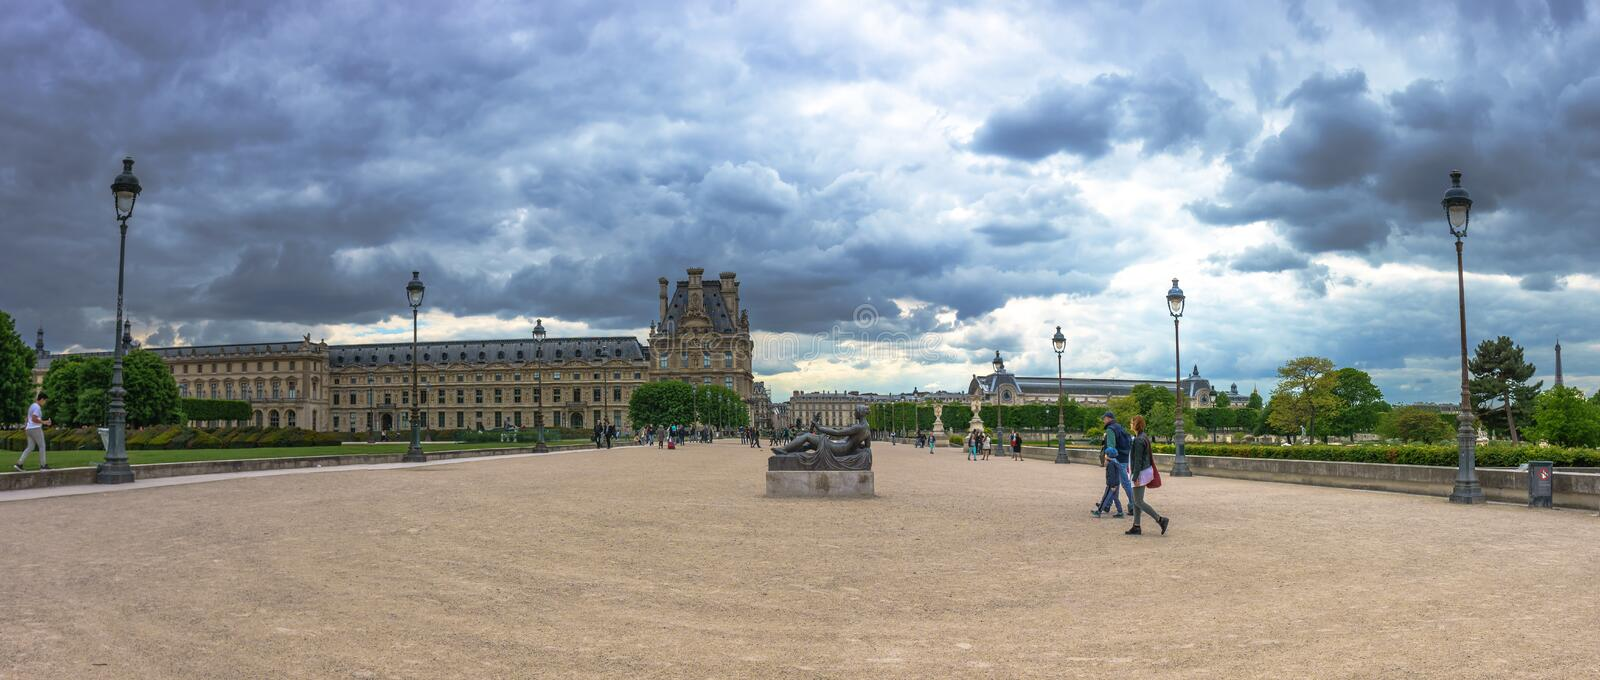 Paris, France - May 2, 2017: Panorama view of Monument to Cezanne statue in Tuileries Gardens with the Pavilion of Flore in stock image